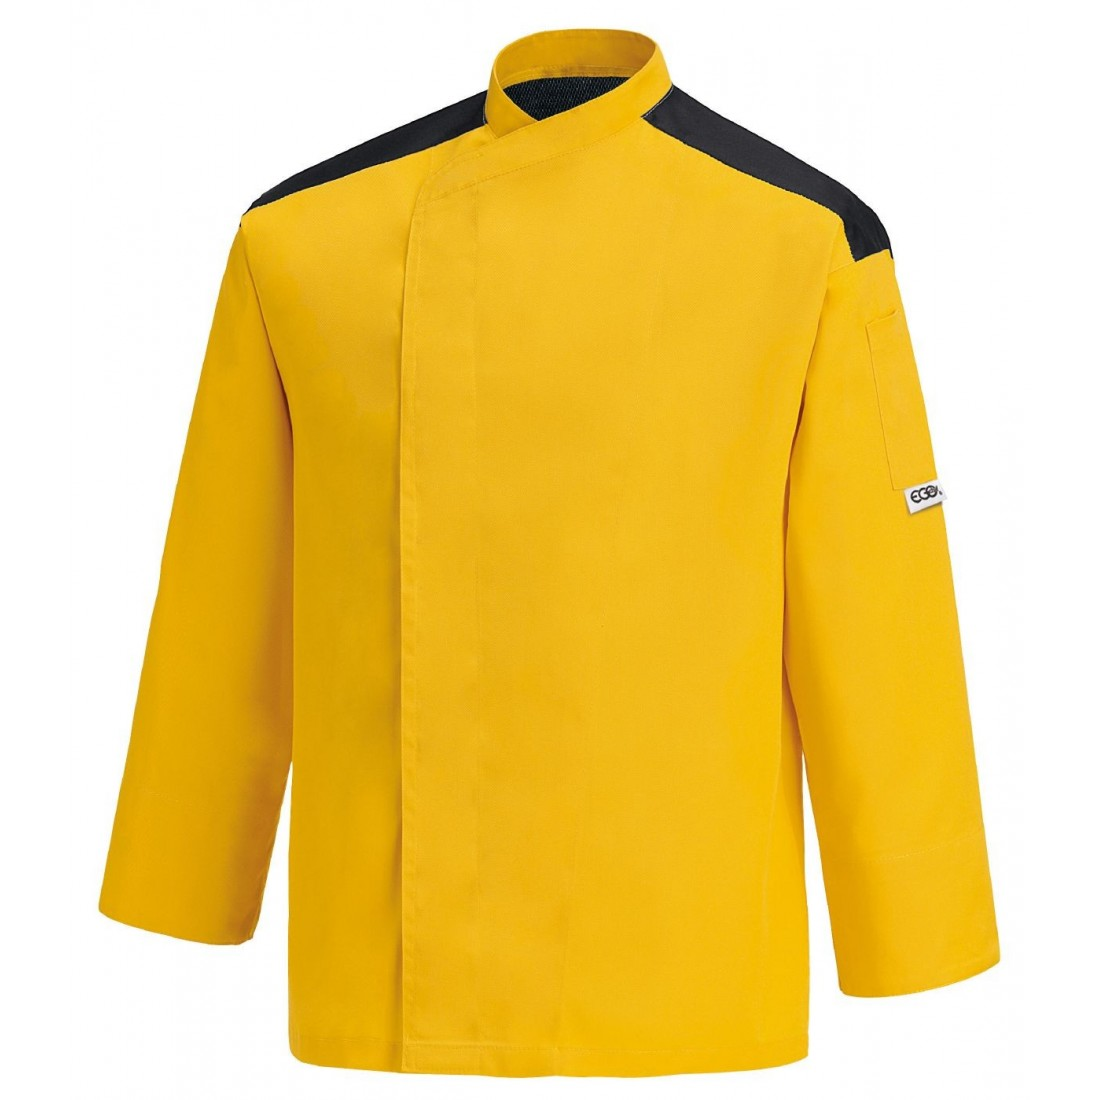 Chaqueta cocina yellow first 2041012C